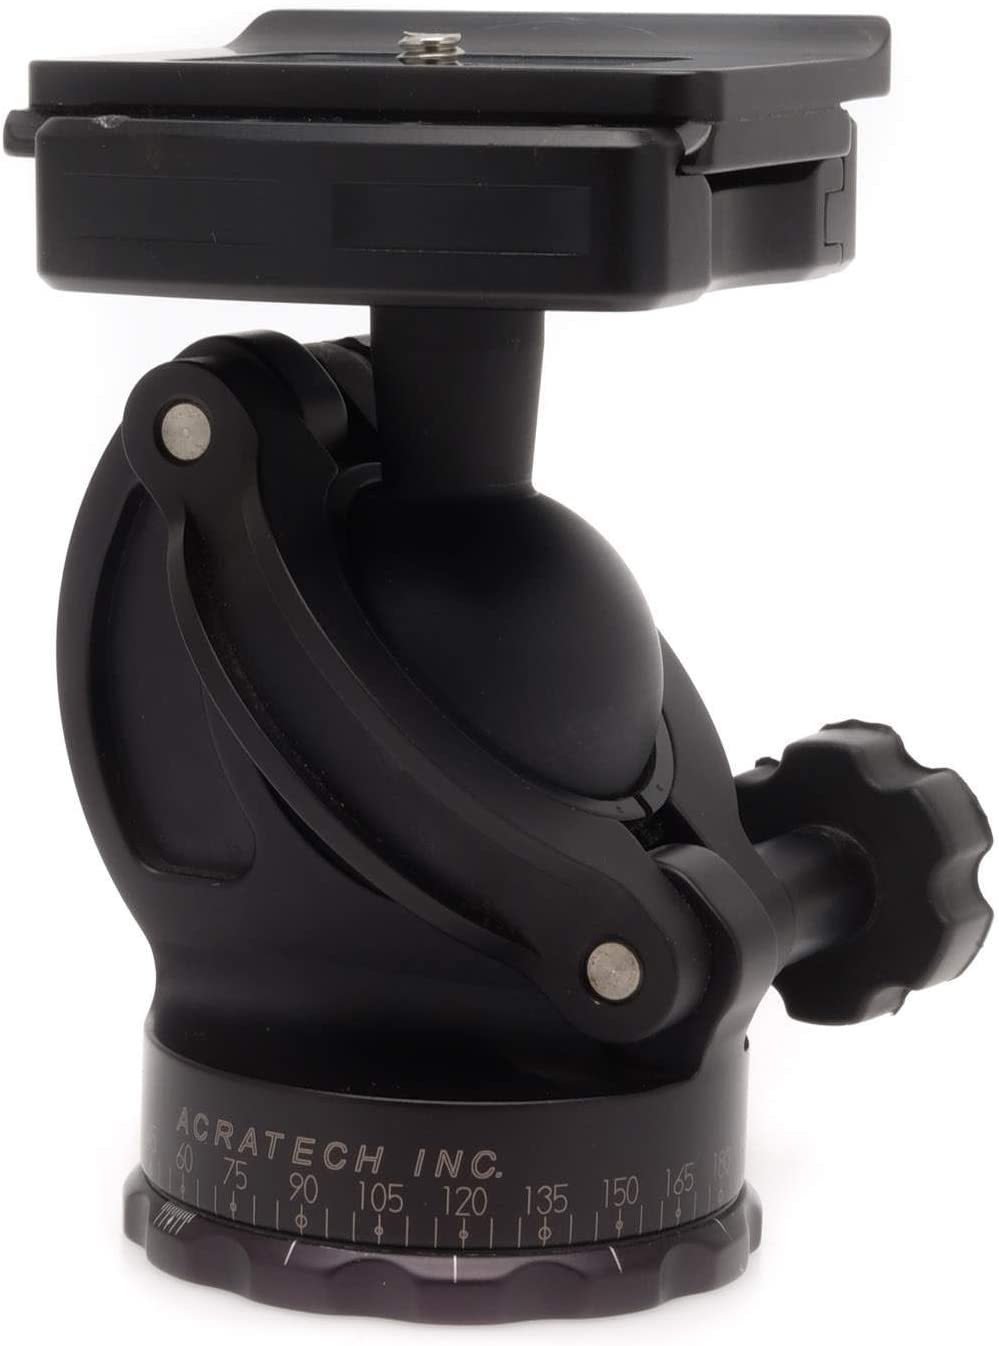 and Pan Knobs with Left Sided Rubber Main // Detent Pin Acratech Ultimate Ballhead with Quick Release Supports 25 lbs.